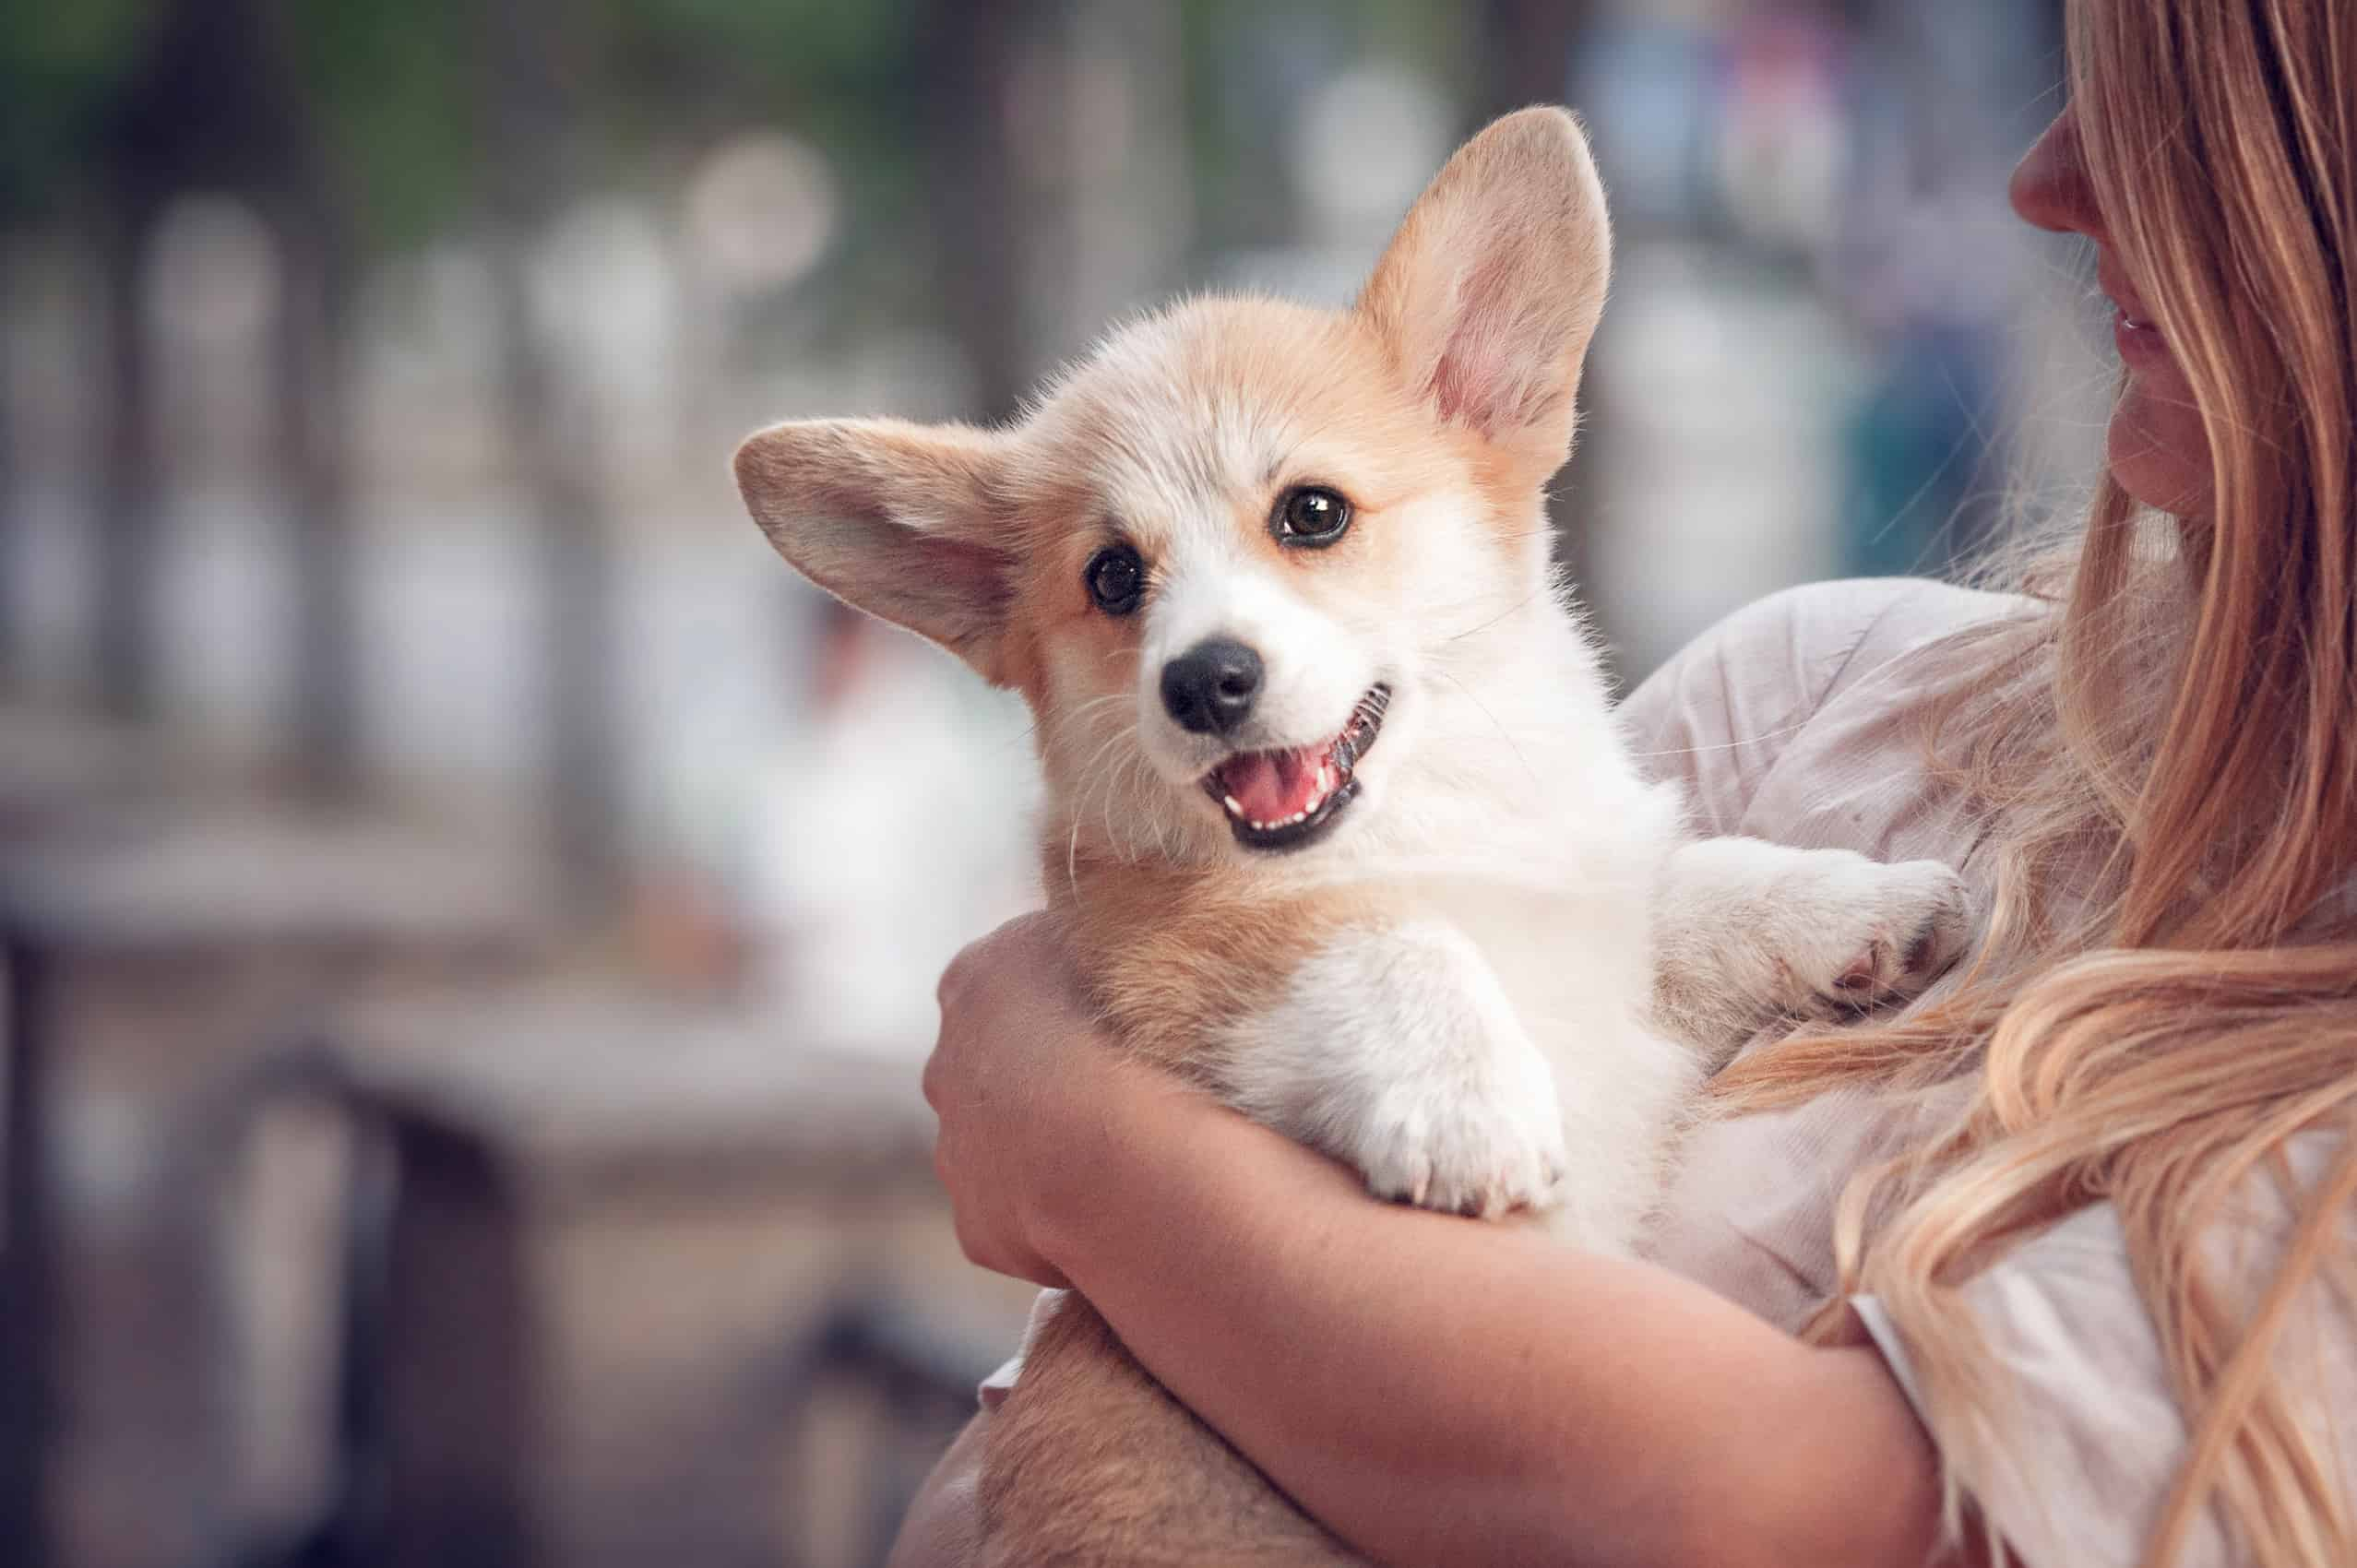 cute corgi puppy in mum's mom's arms - but is she really feeling that smile? Or is she nervous or anxious behind it?